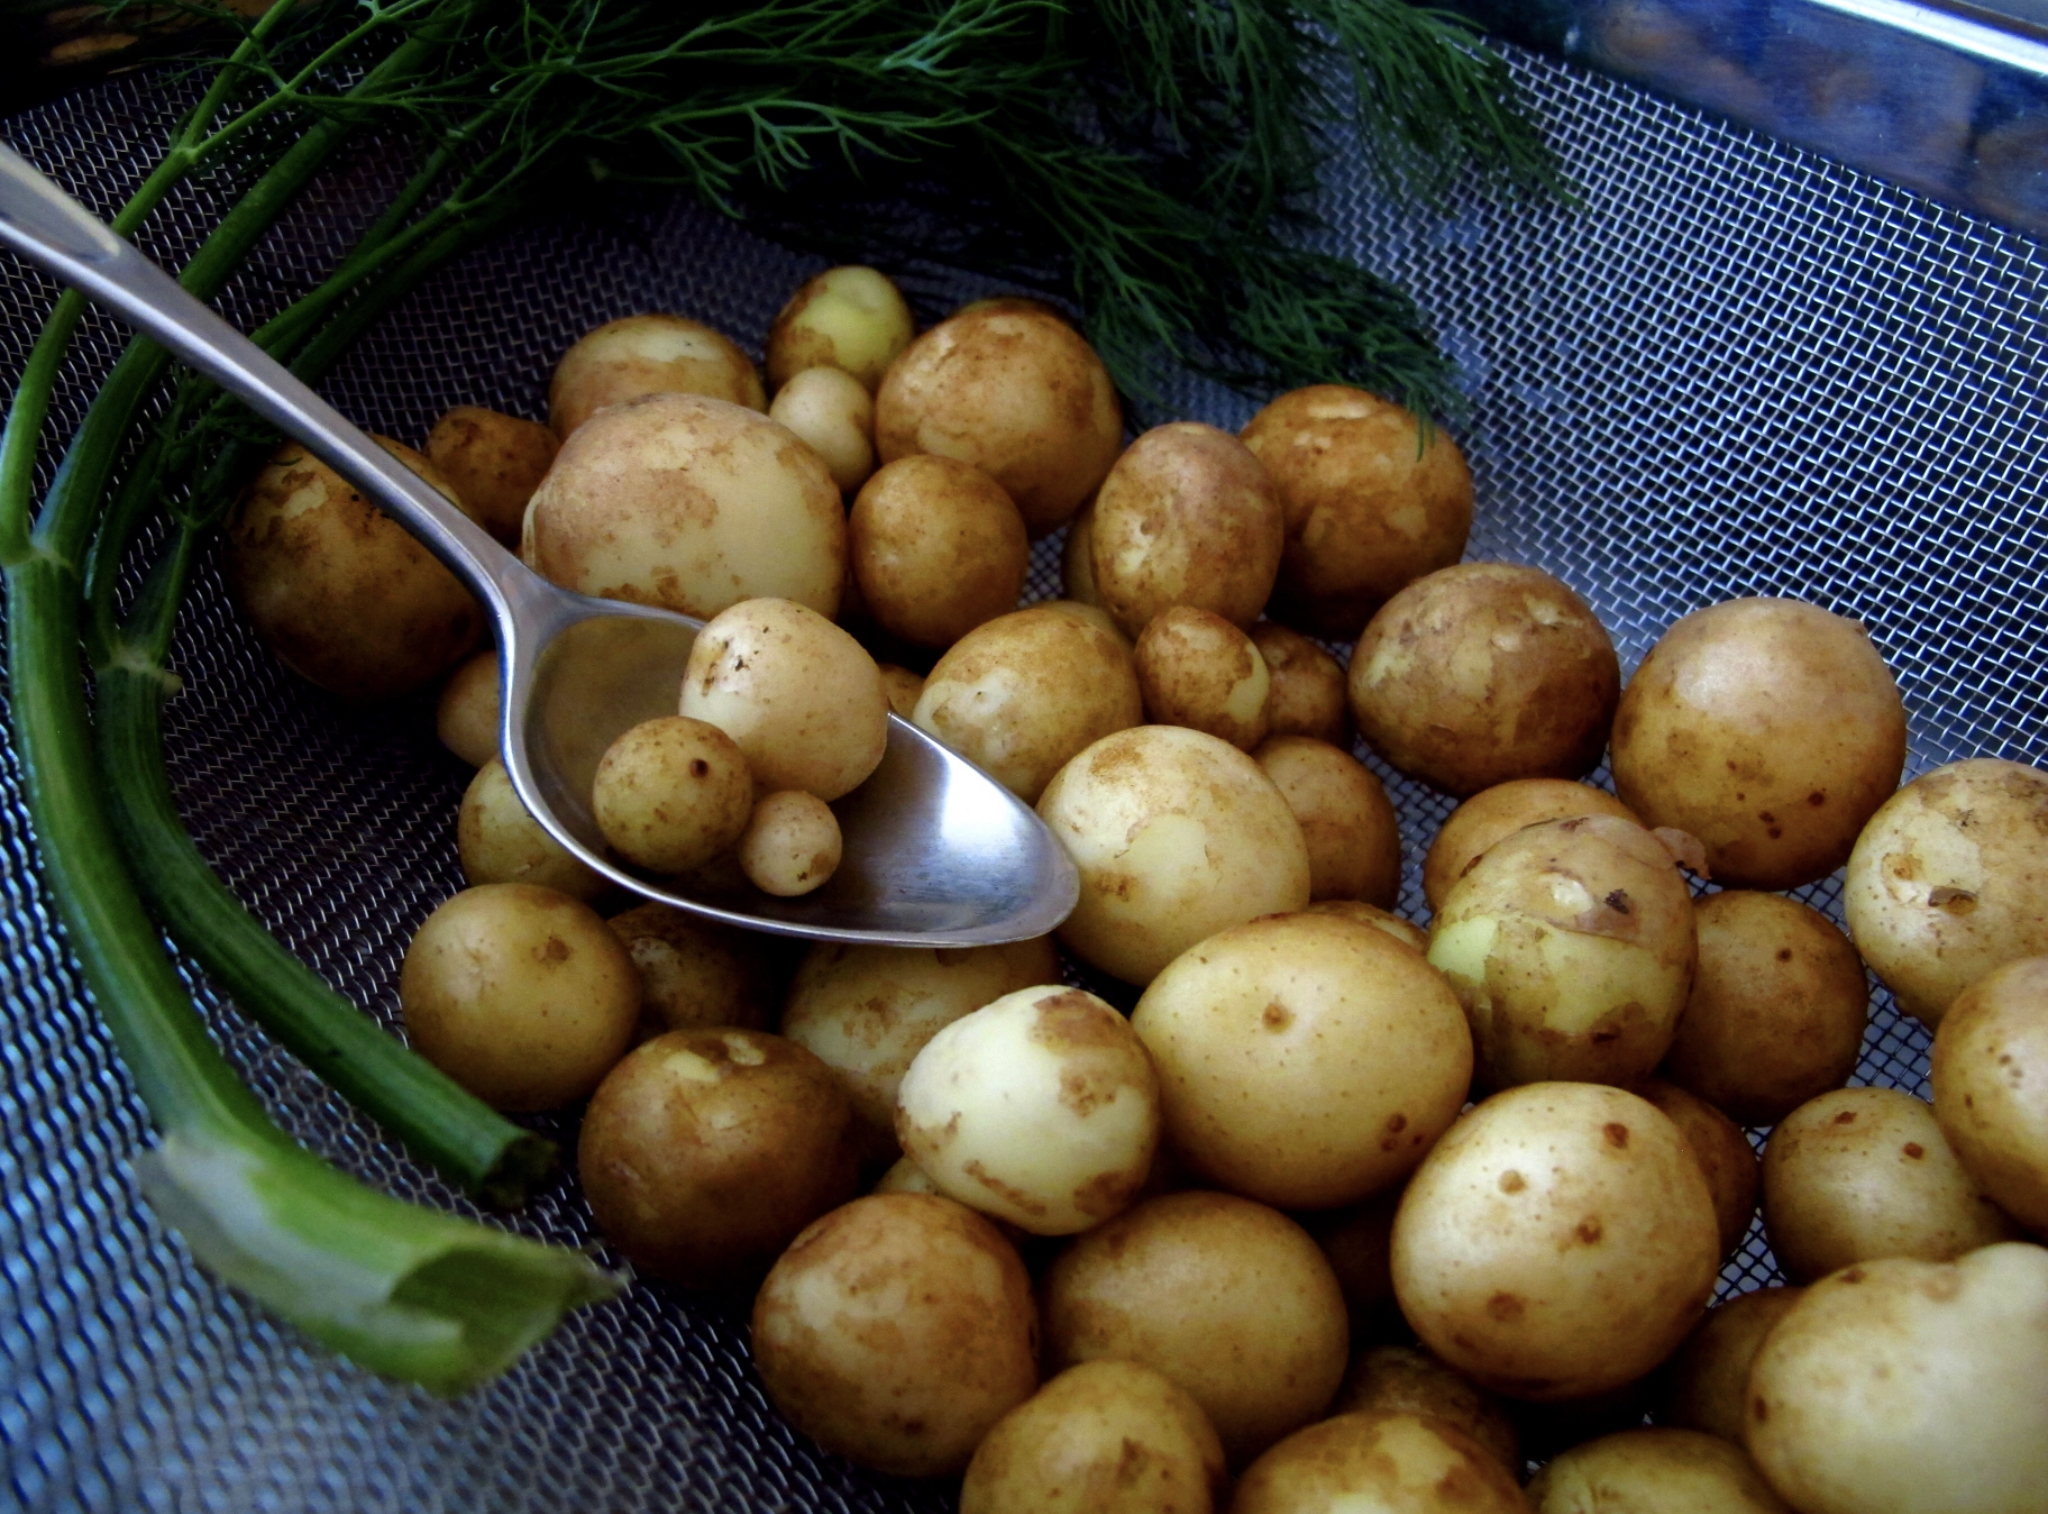 New Cheshire Potatoes now available, dug each morning